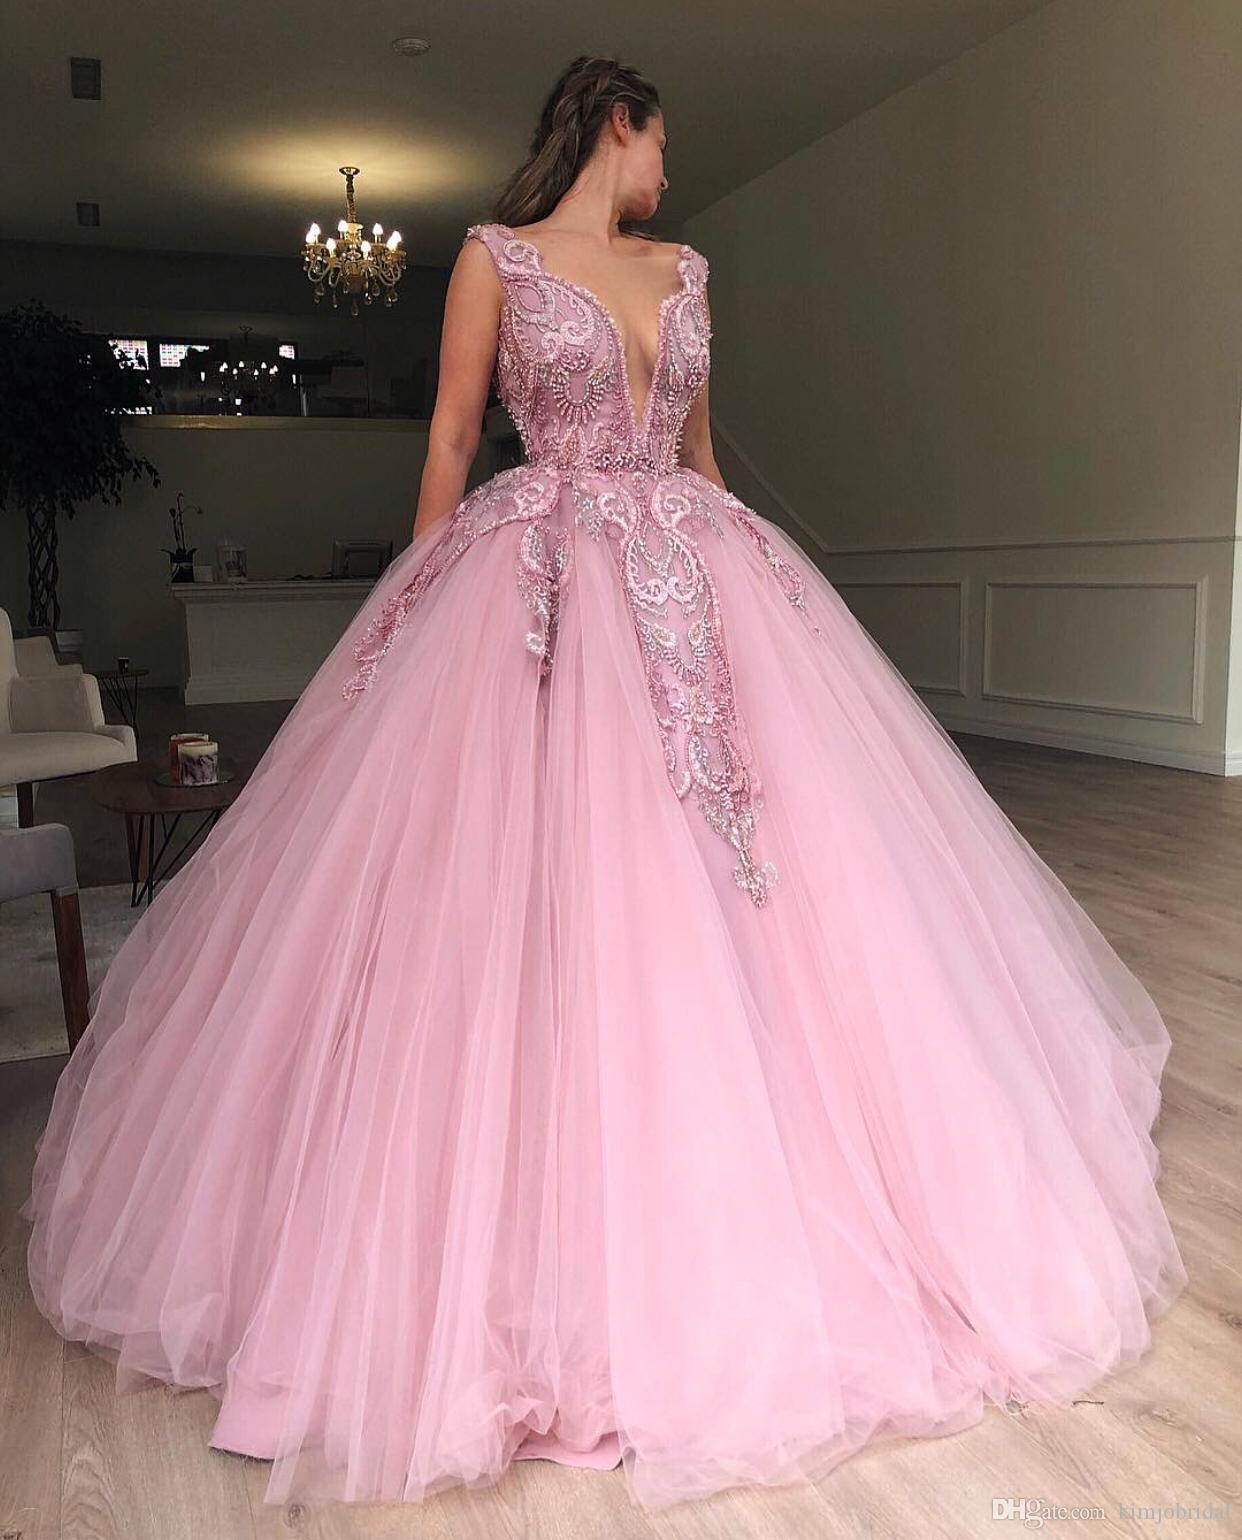 99a78c38afd38 2019 Luxury Pink Prom Dresses Ball Gown Lace Applique Beaded Elegant Prom  Dress Sweet 16 Dresses